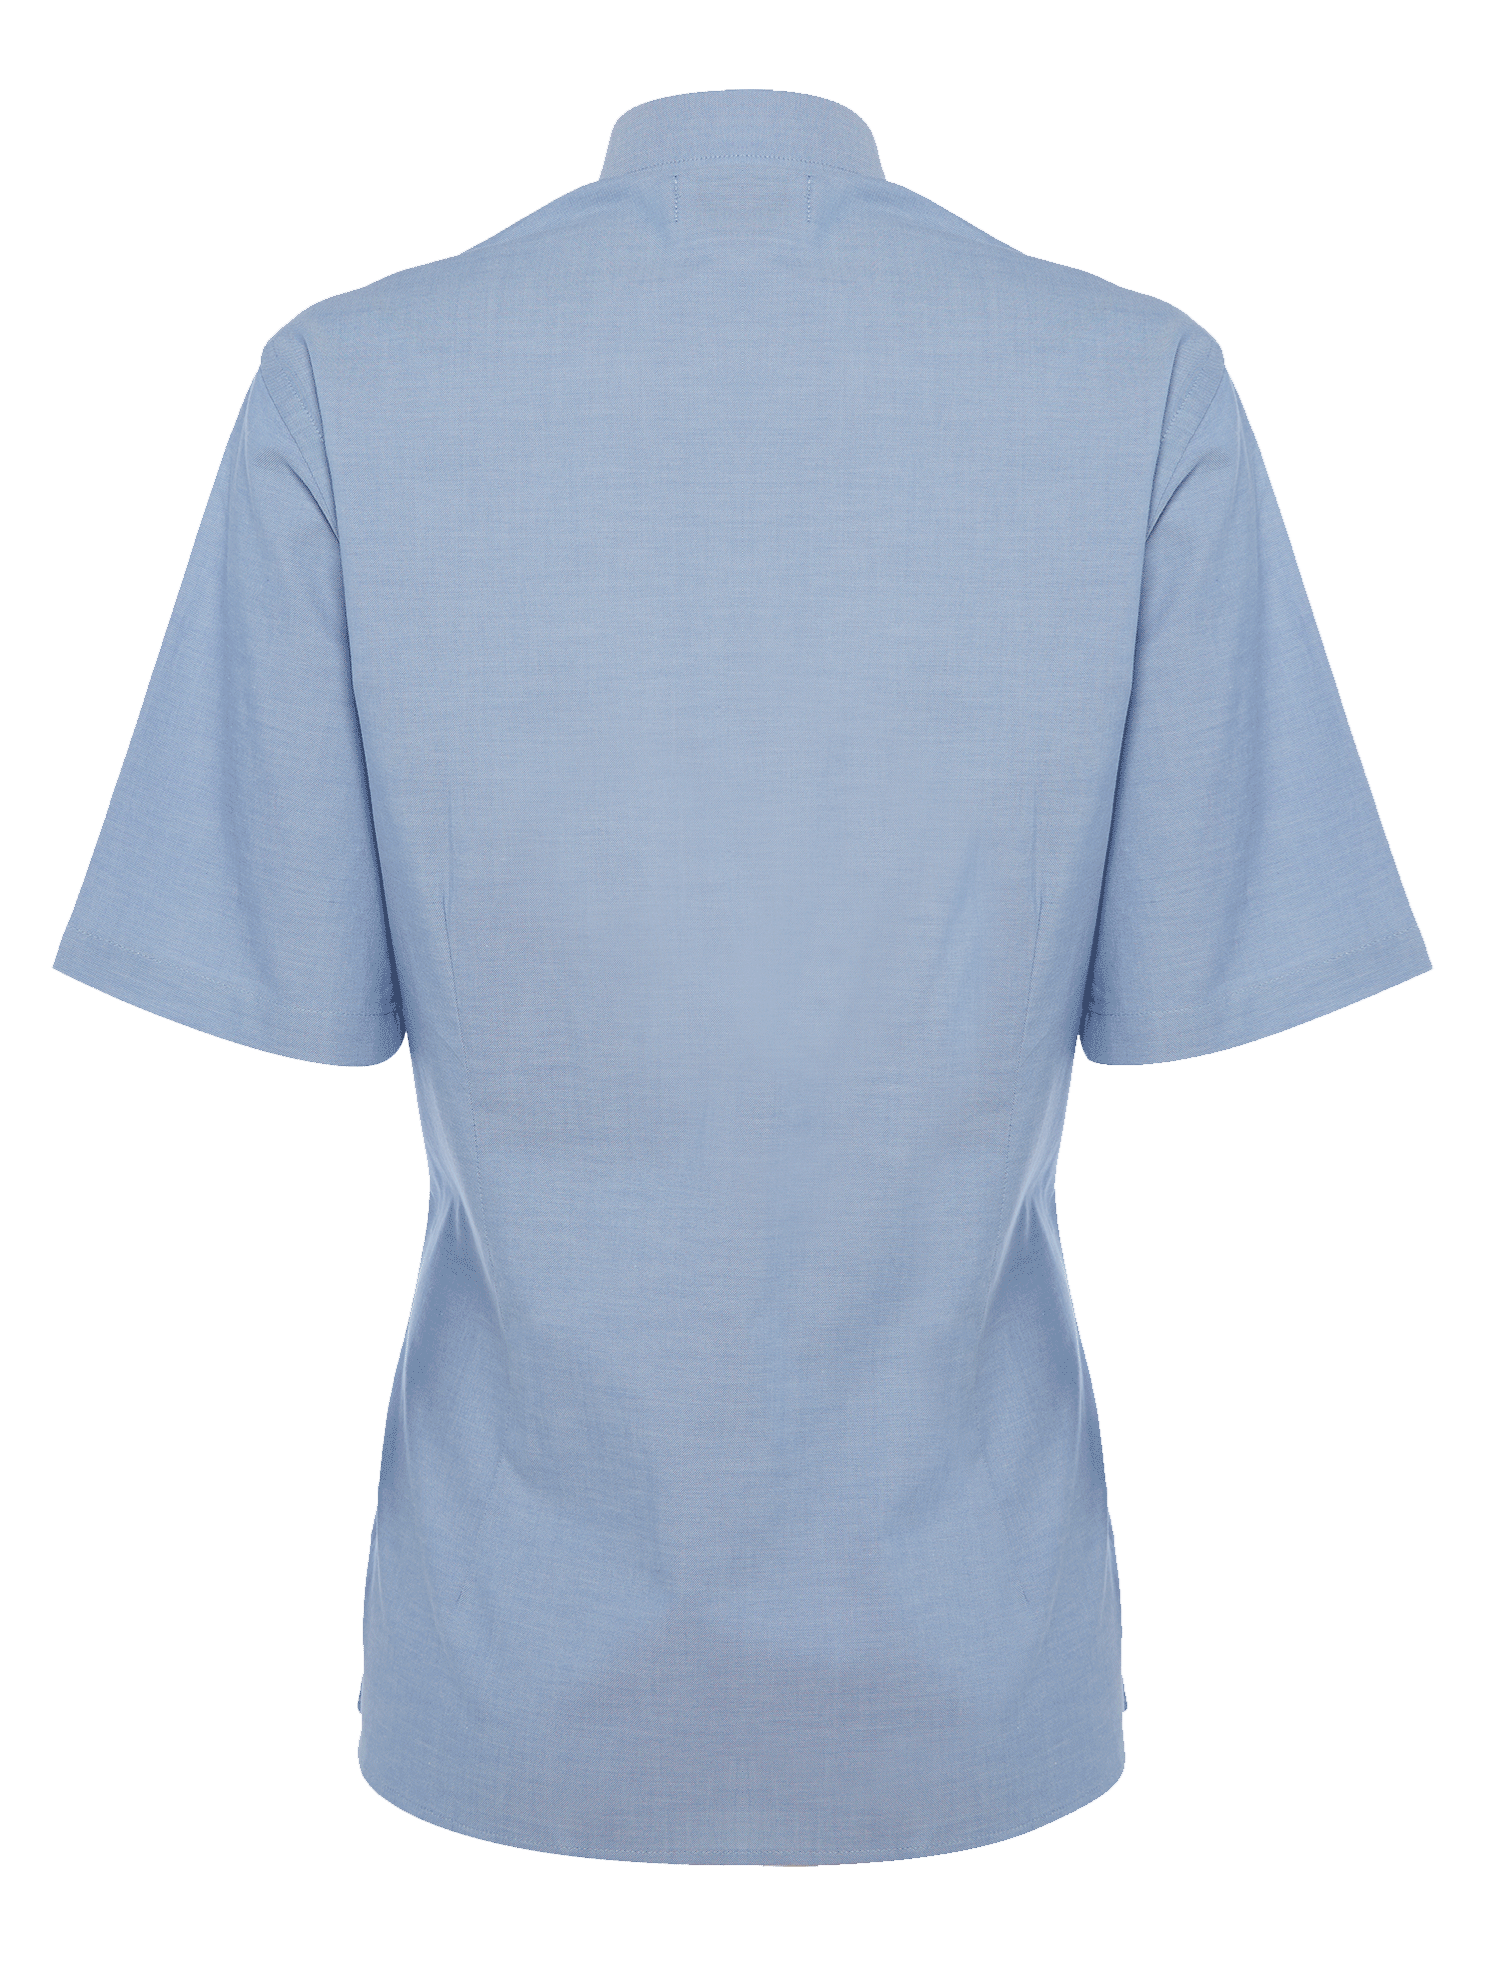 Picture of Ladies Short Sleeve Oxford Shirt - Light Blue